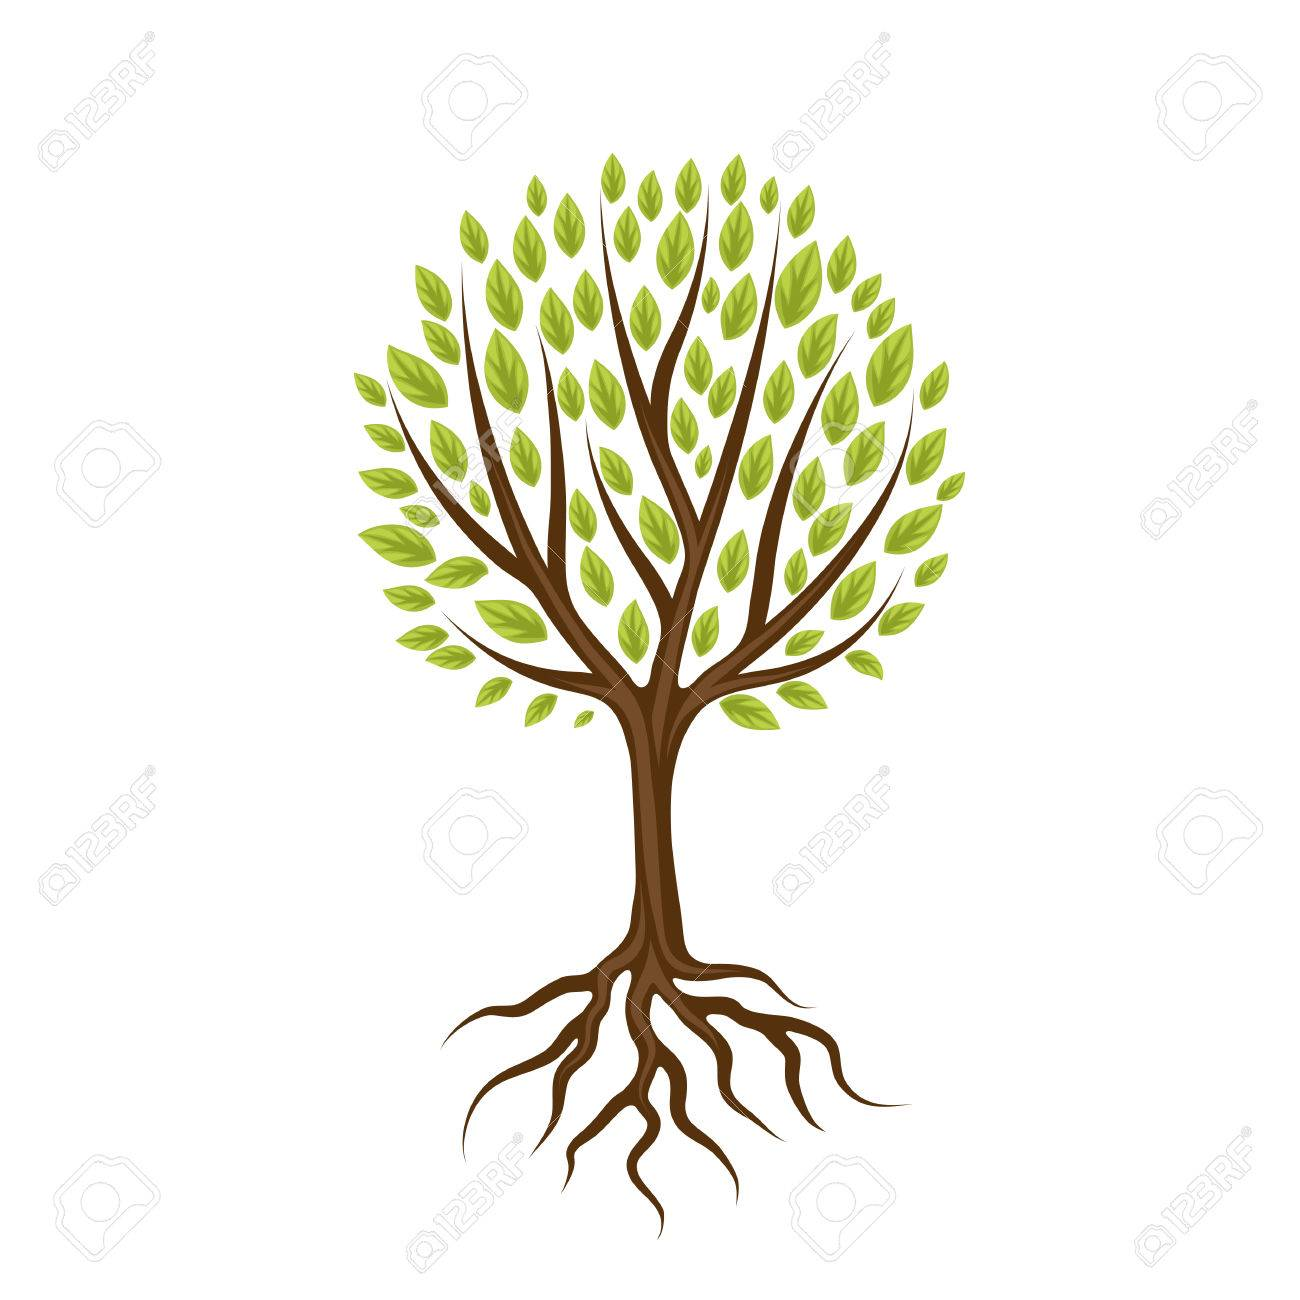 Abstract stylized tree with roots and leaves. Natural illustration. - 66760448